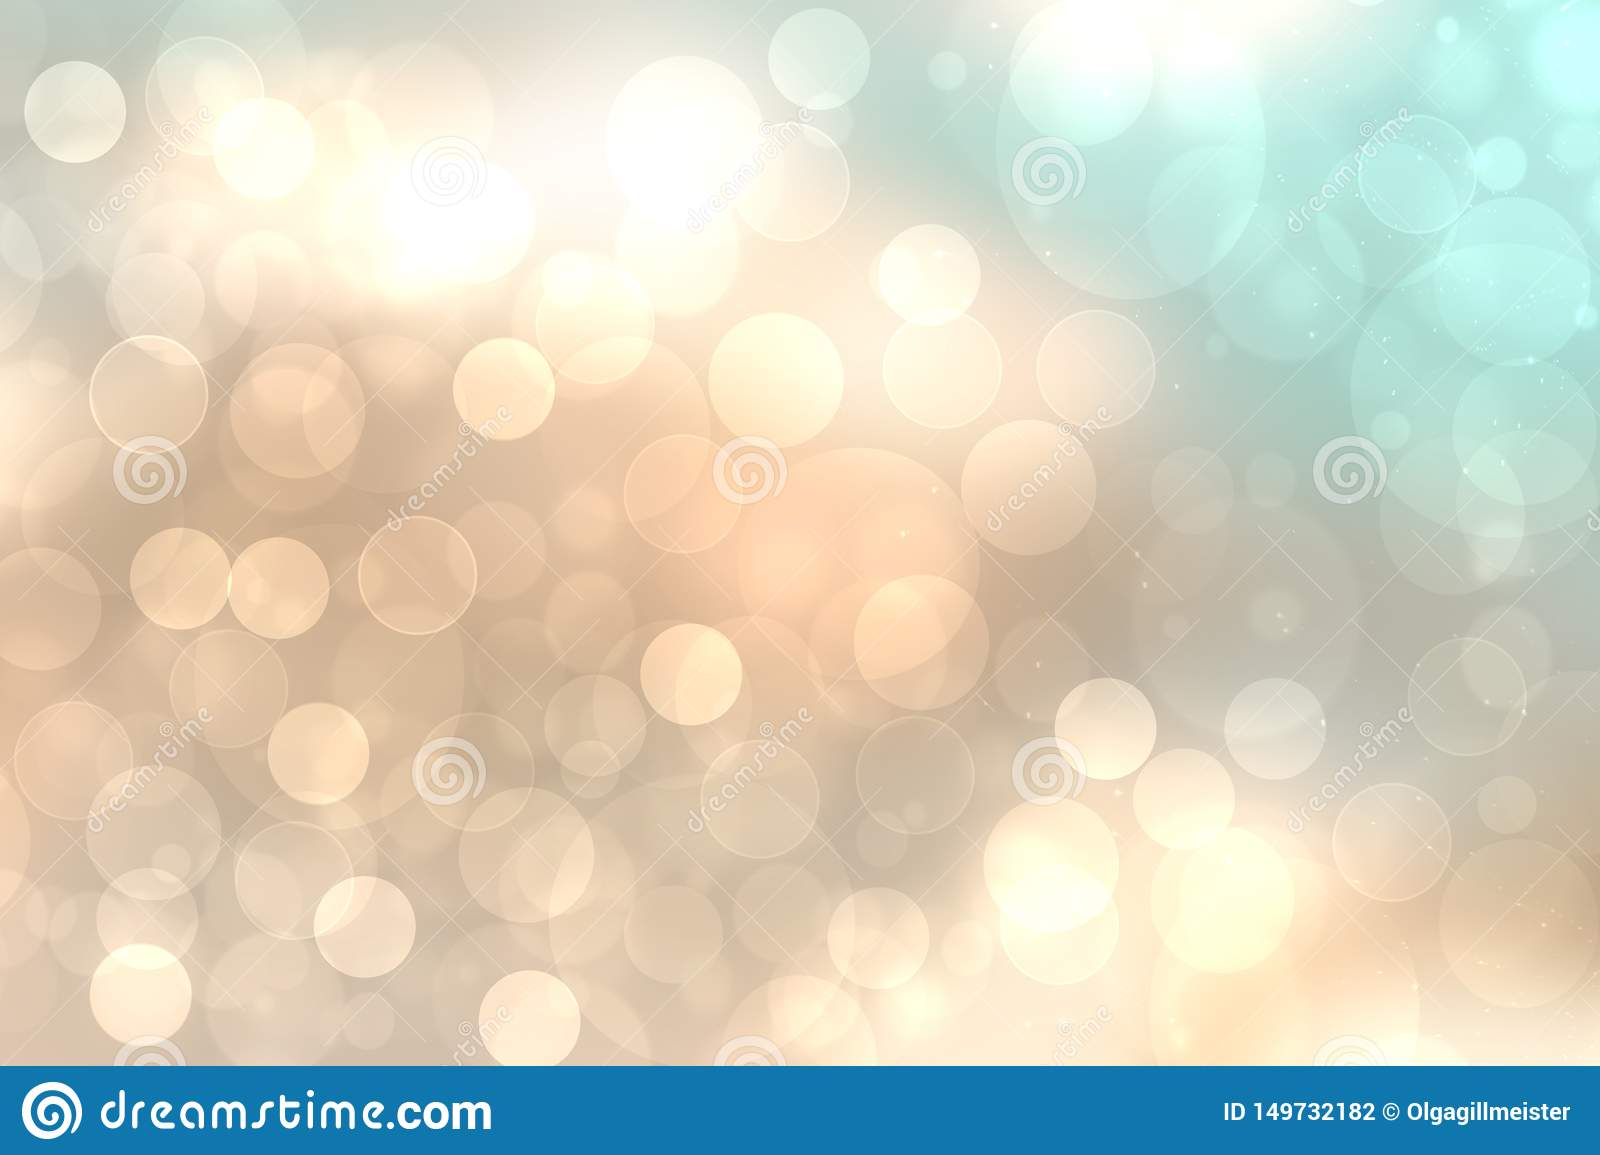 A festive abstract golden turquoise gradient background texture with glitter defocused sparkle bokeh circles. Card concept for